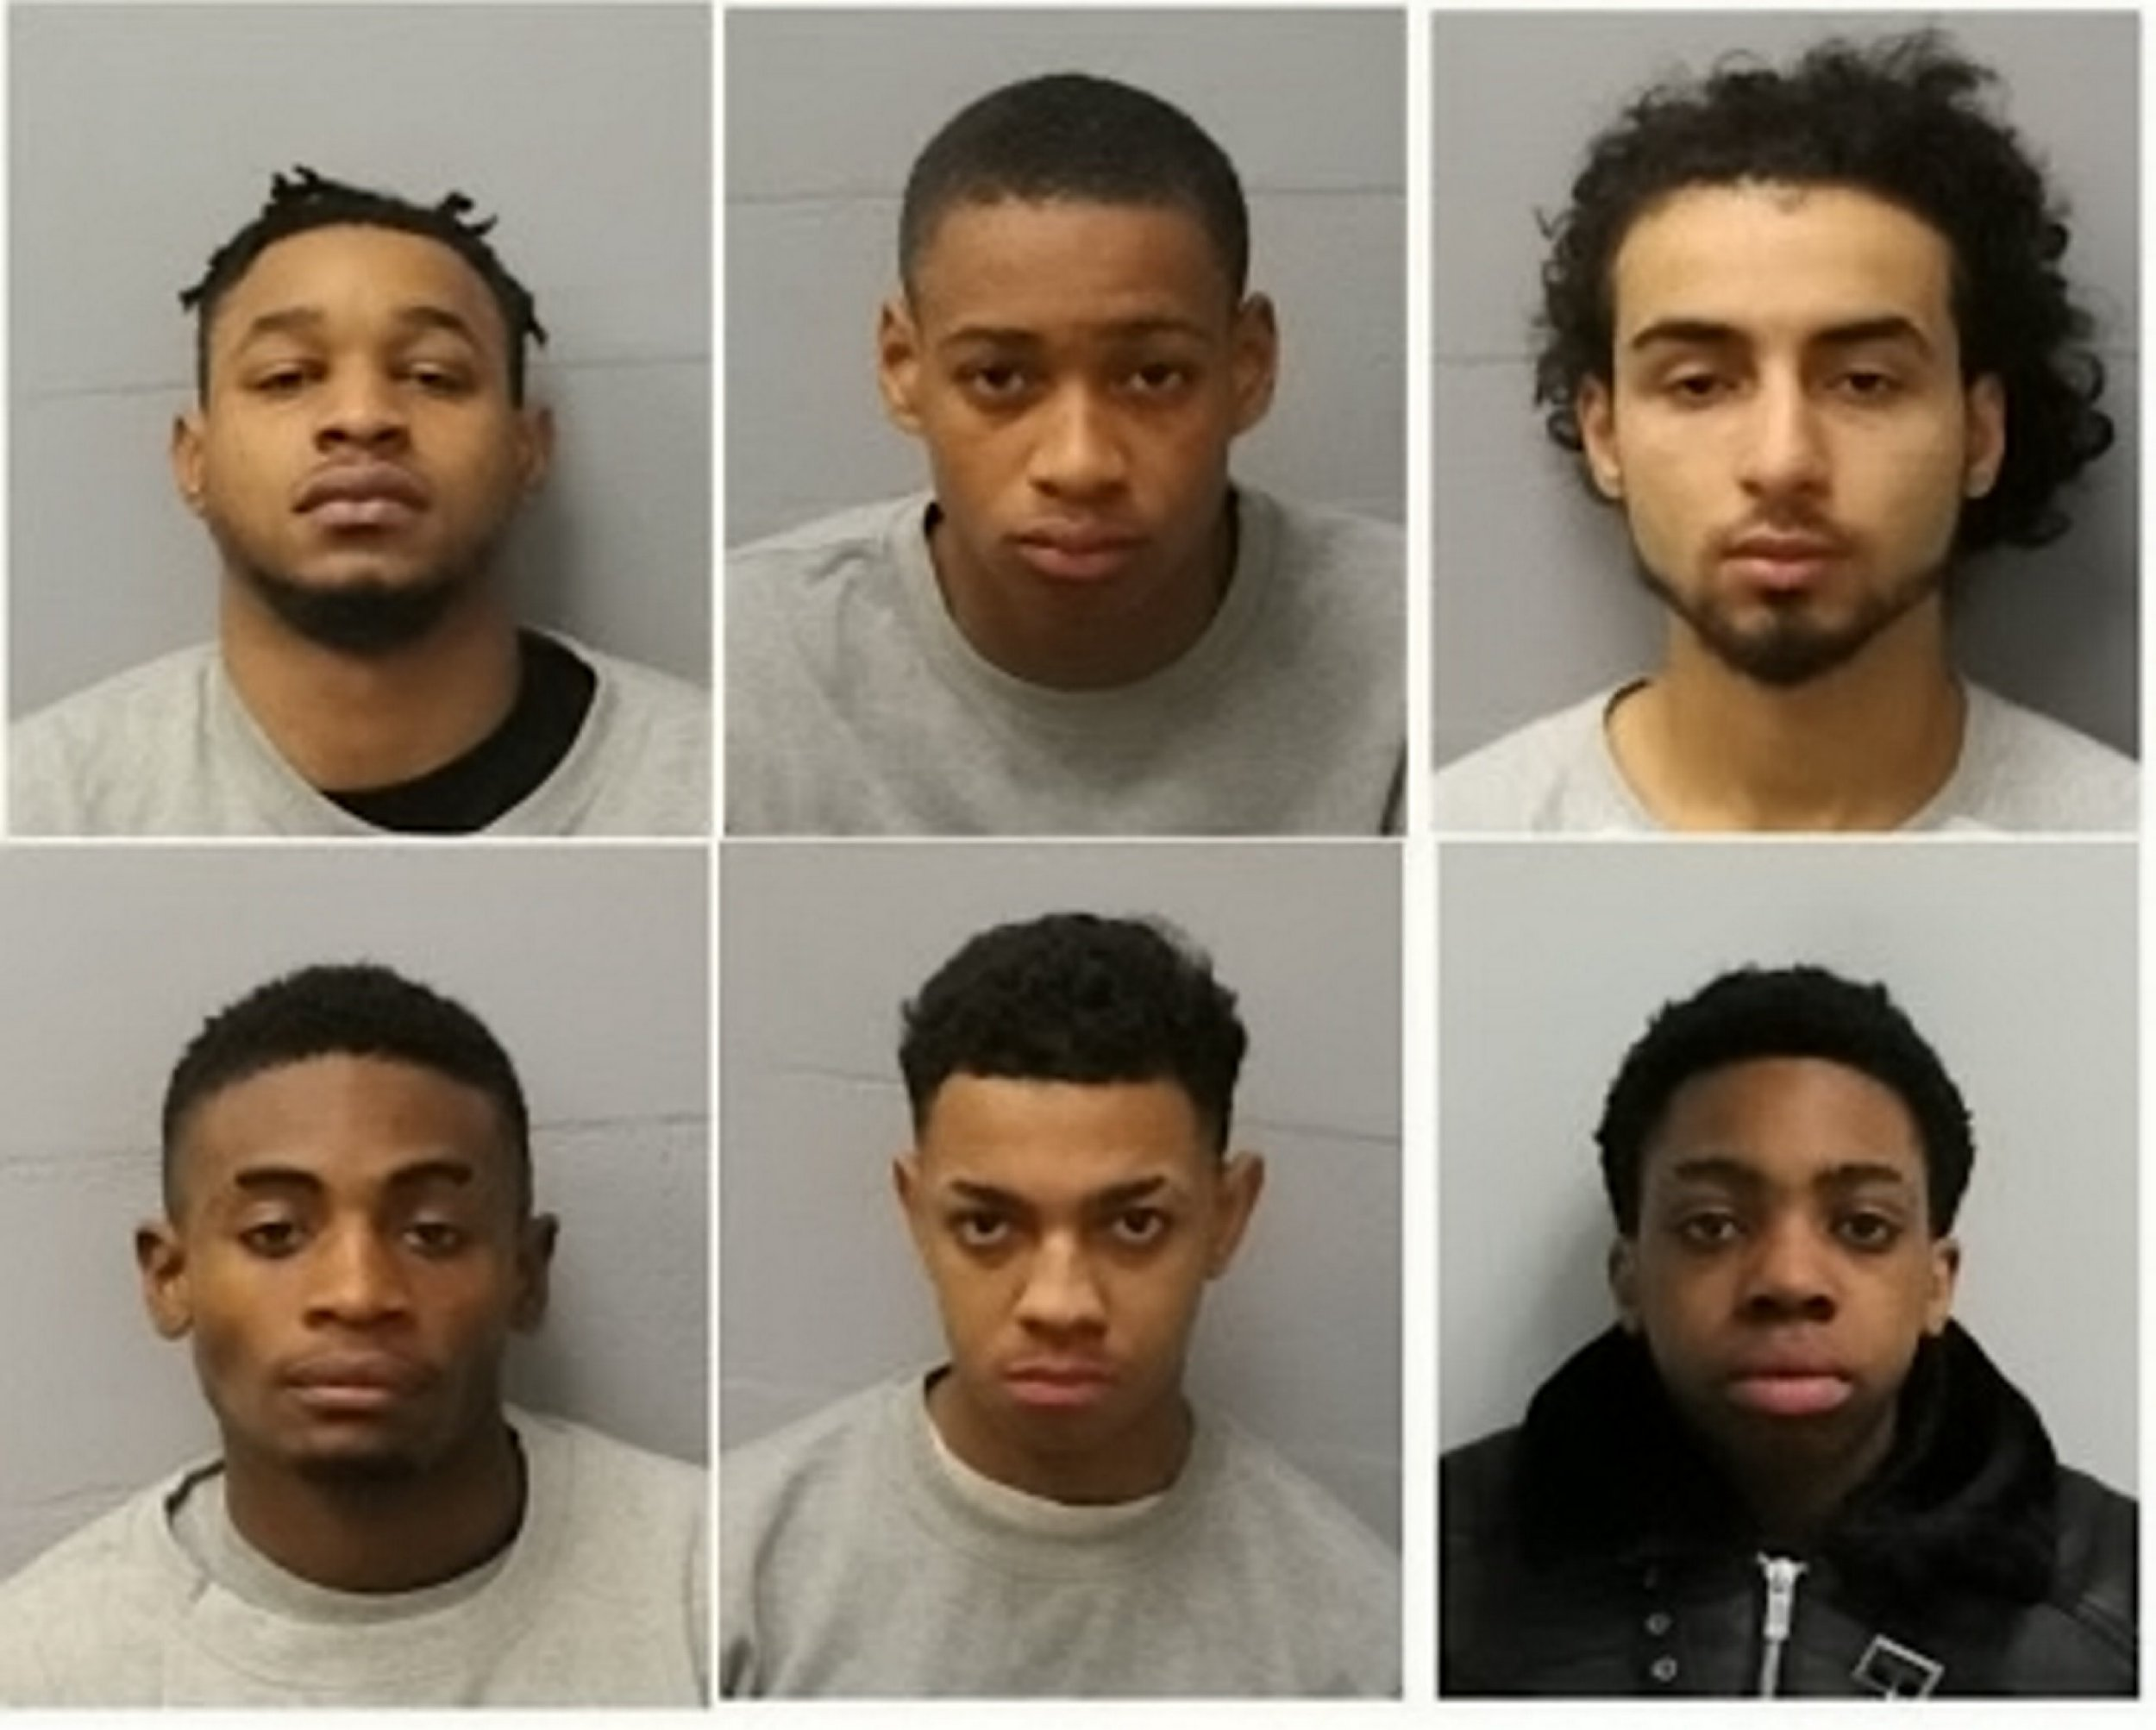 The gang sentenced for their part in an altercation that led to life threatening injuries.. See national story NNDRILL. A drill music gang whose bragged about attacking rivals in a postcode gang feud were jailed for nearly 15 years after one of their own almost bled to death. The gang from Shepherds Bush waged ?tit for tat? gun and knife war with another gang from neighbouring Kensington and Chelsea since the summer of 2016. Both gangs released numerous drill music videos boasting about stabbing or robbing their rivals fuelling the violence. And in several tit-for-tat incidents gang members were stabbed and shot.